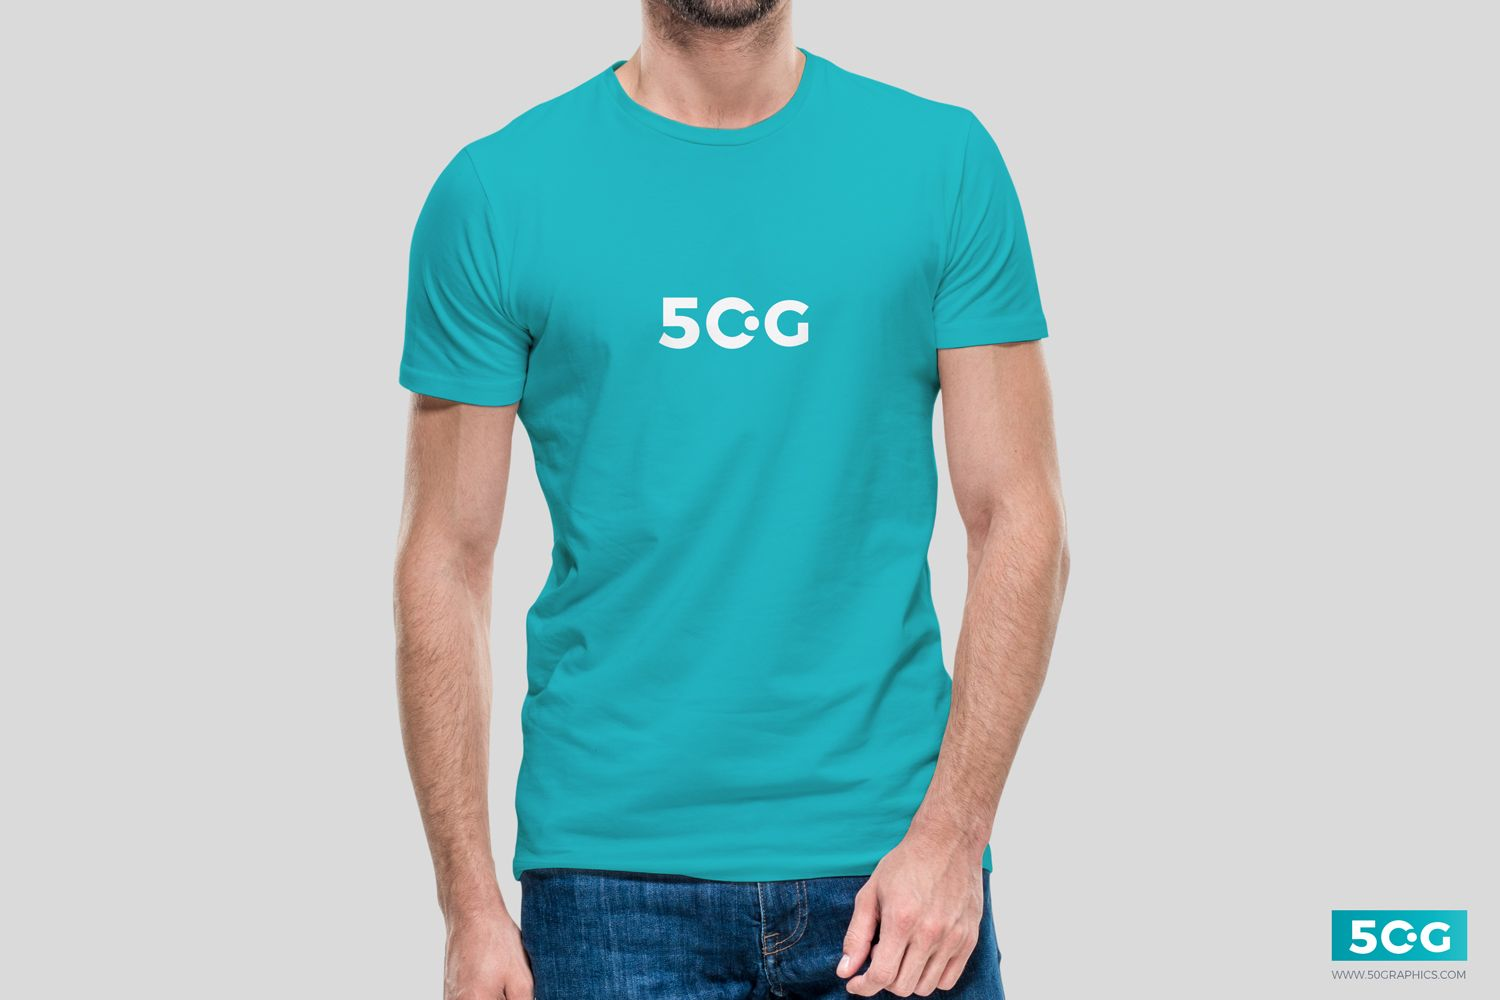 Polo T Shirt Mockup Front And Back Psd Free Free Young Man Wearing T Shirt Mockup Psd Shirt Mockup T Shirt Free Mockup